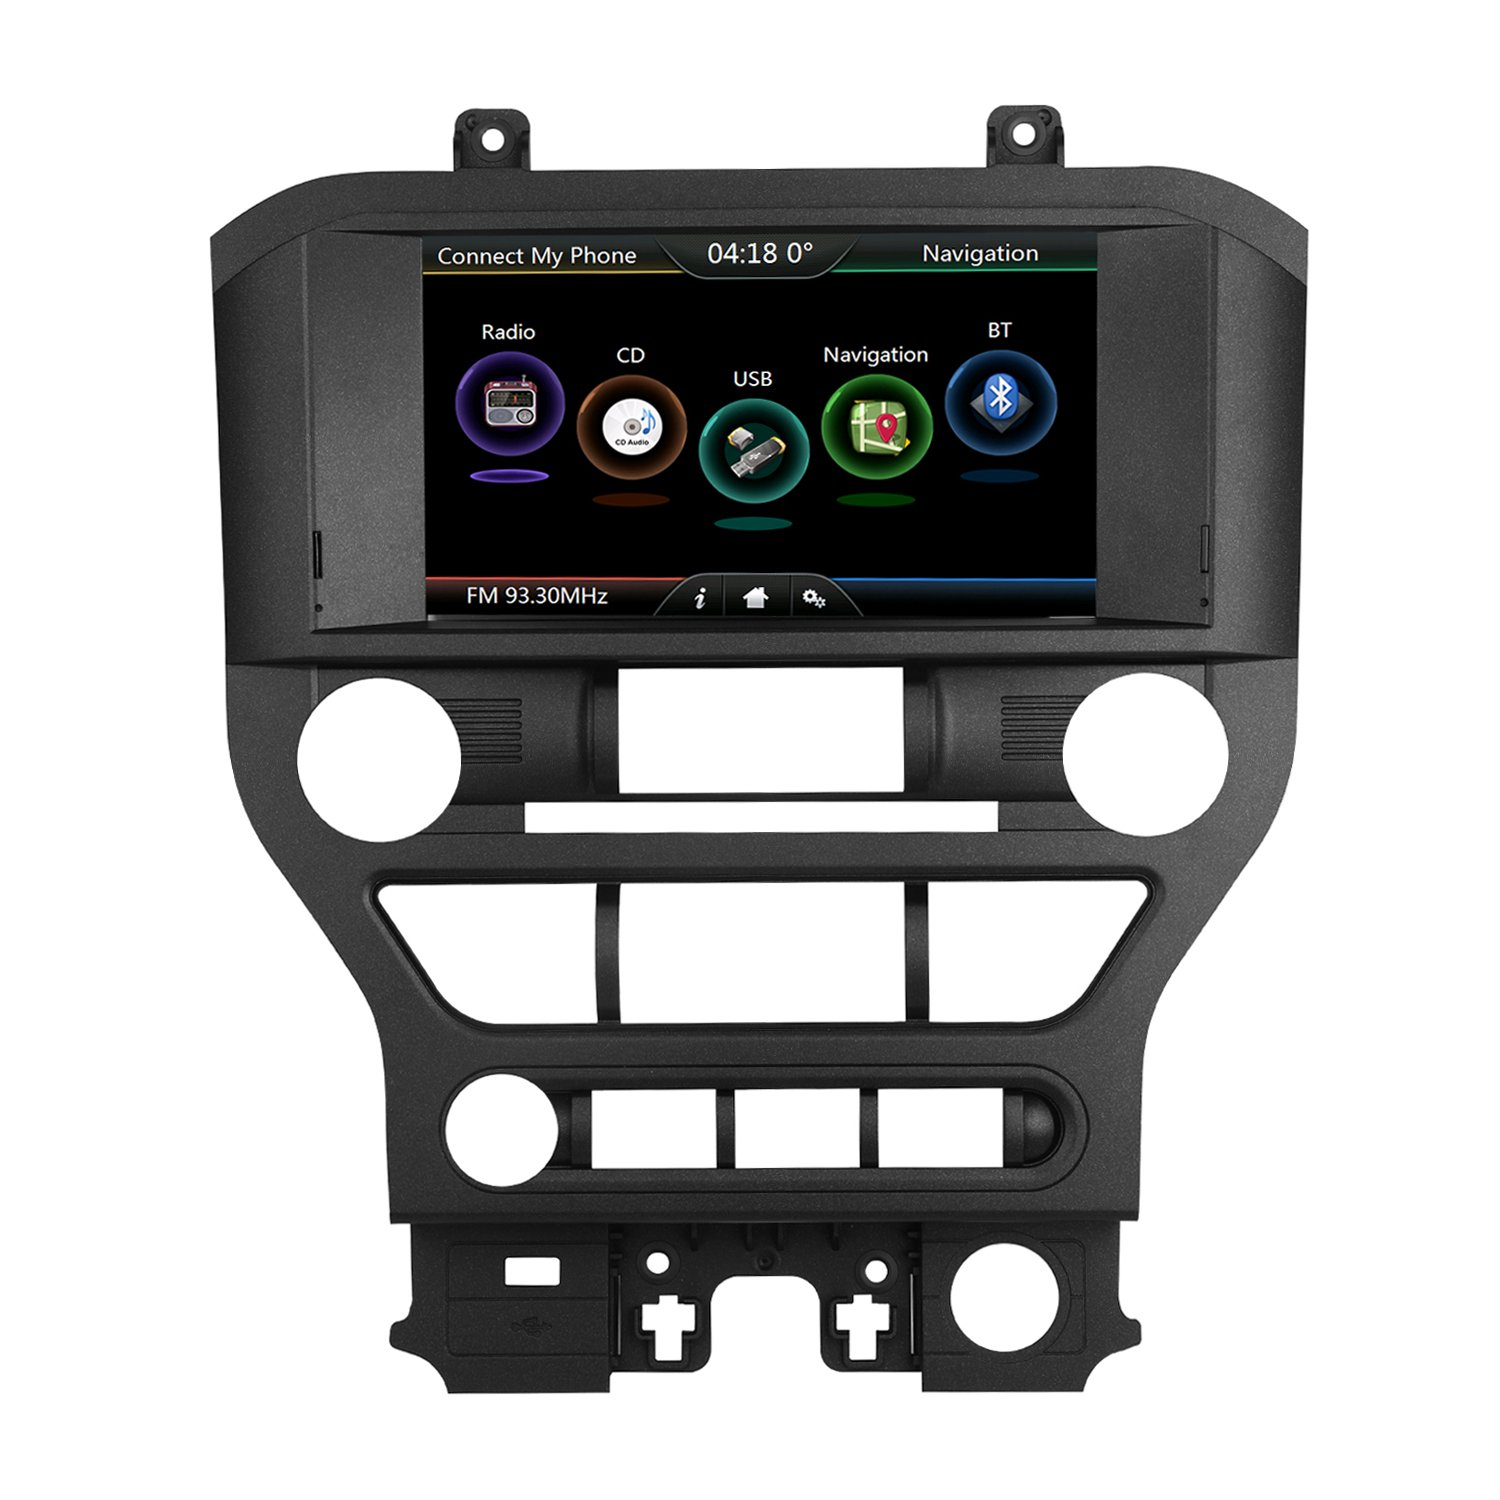 Ford Mustang 2015 2016 2017 In-dash GPS Navigation System, Upgrade Mustang Car Monitor 8 Inch HD Touchscreen Radio GPS Navigation with Rear Camera Input, AUX, USB Video, Audio Car Multimedia Player by Nicenjoy